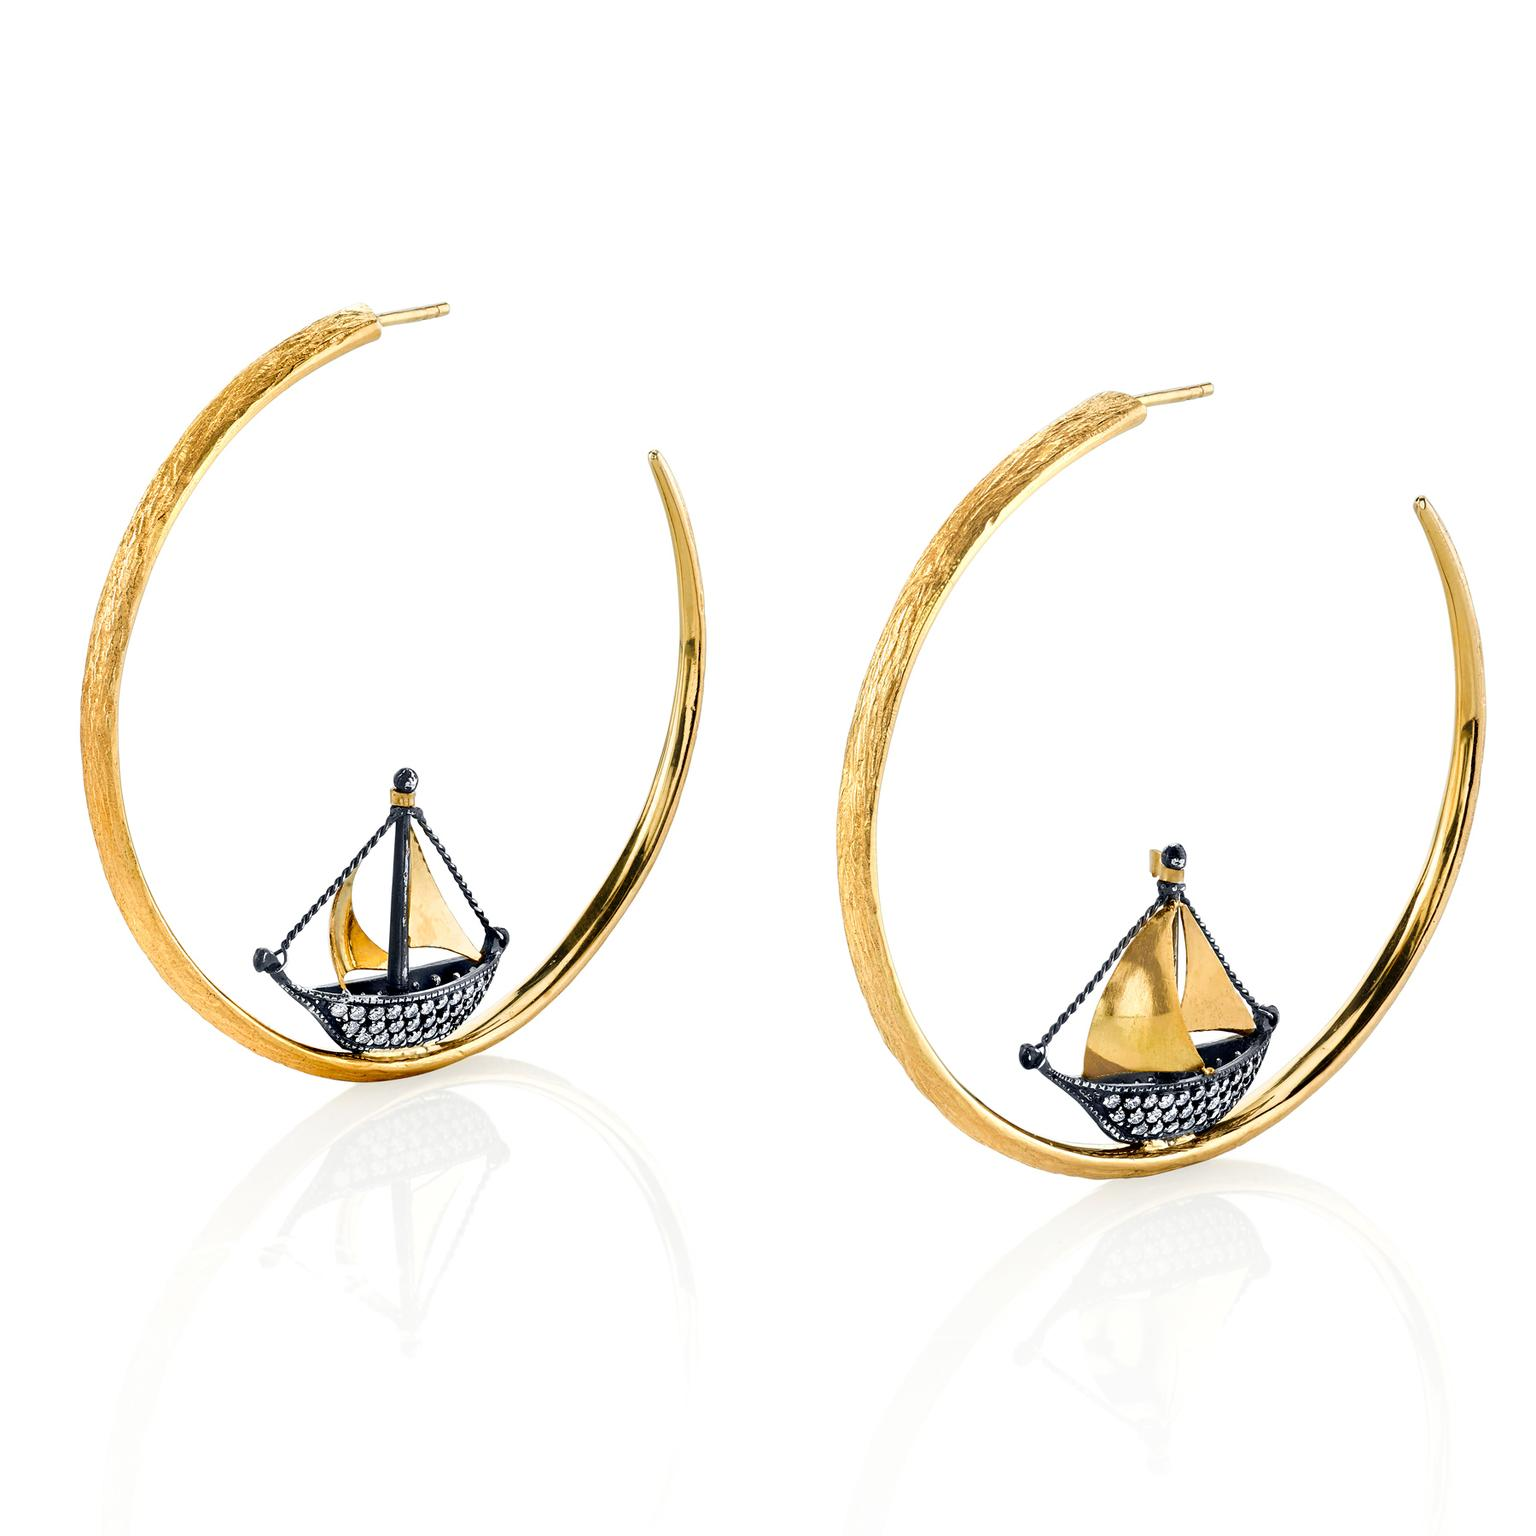 Arman Sarkisyan Sail boat hoop earrings